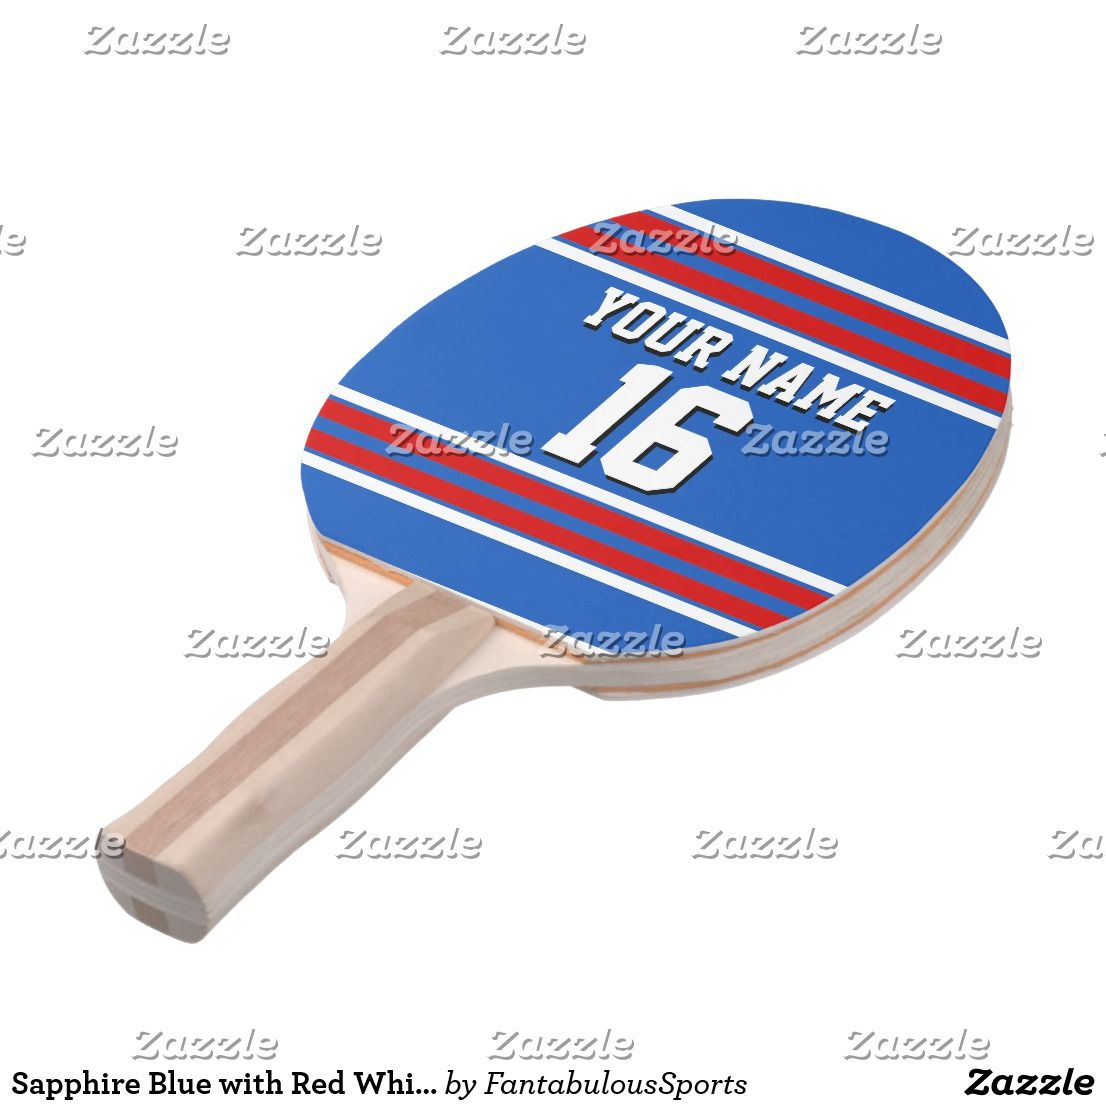 Sapphire Blue with Red White Stripes Team Jersey PingPong Paddle by FantabulousSports